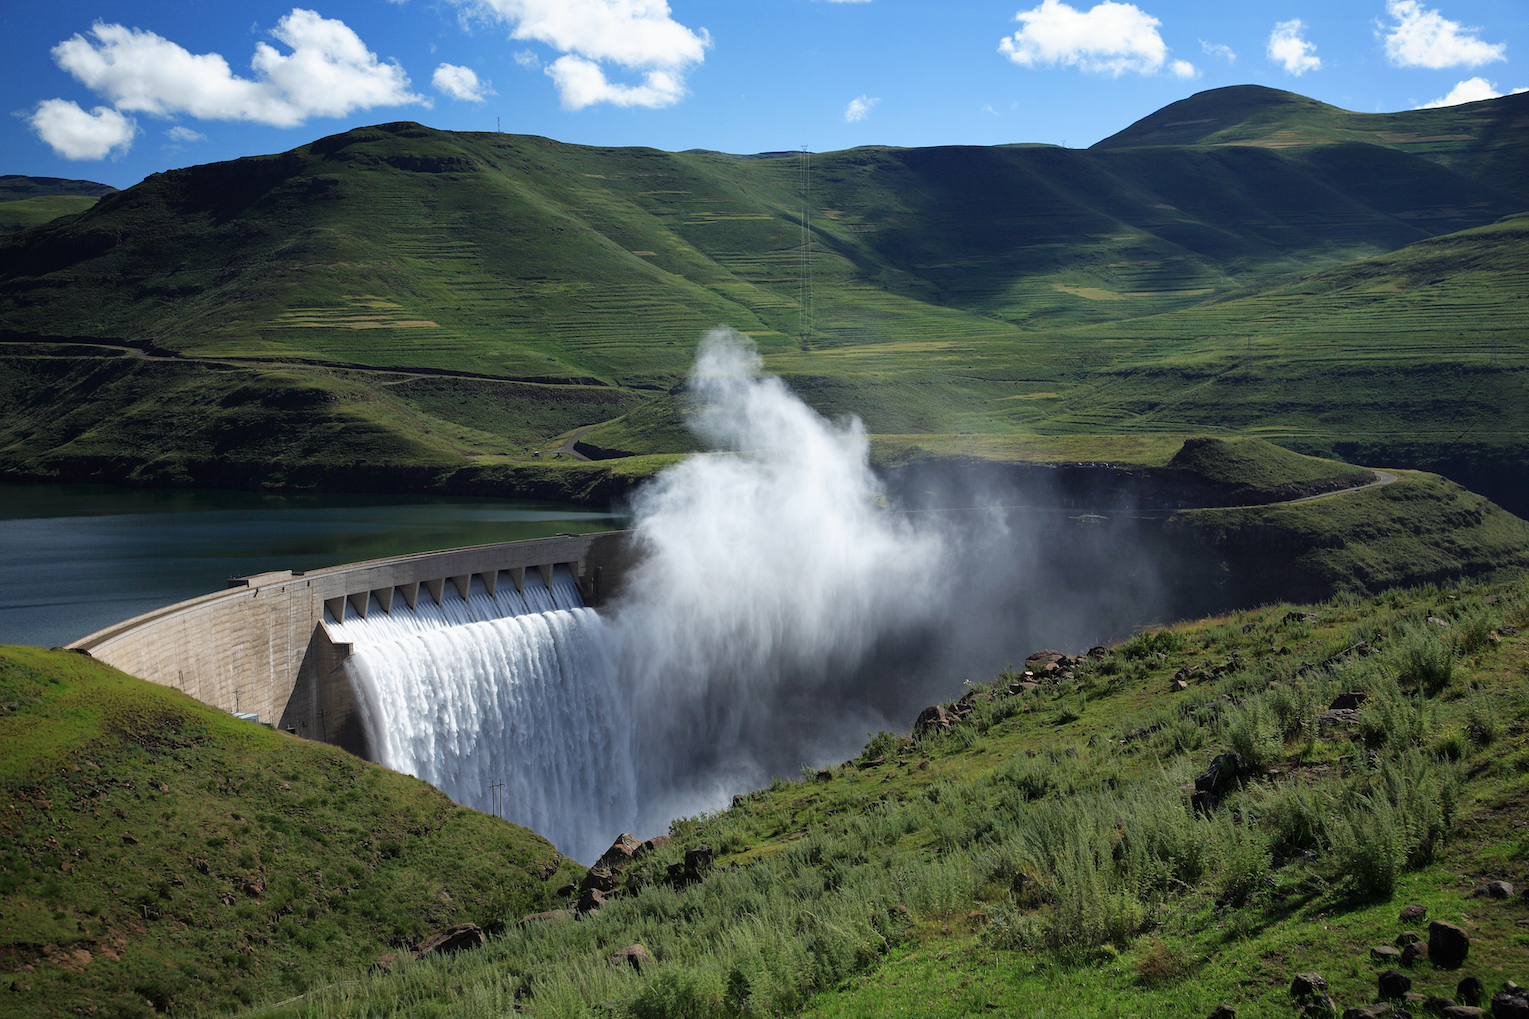 A new study finds that man-made dams have a large impact on carbon exchange that is also making a global contribution to climate change.